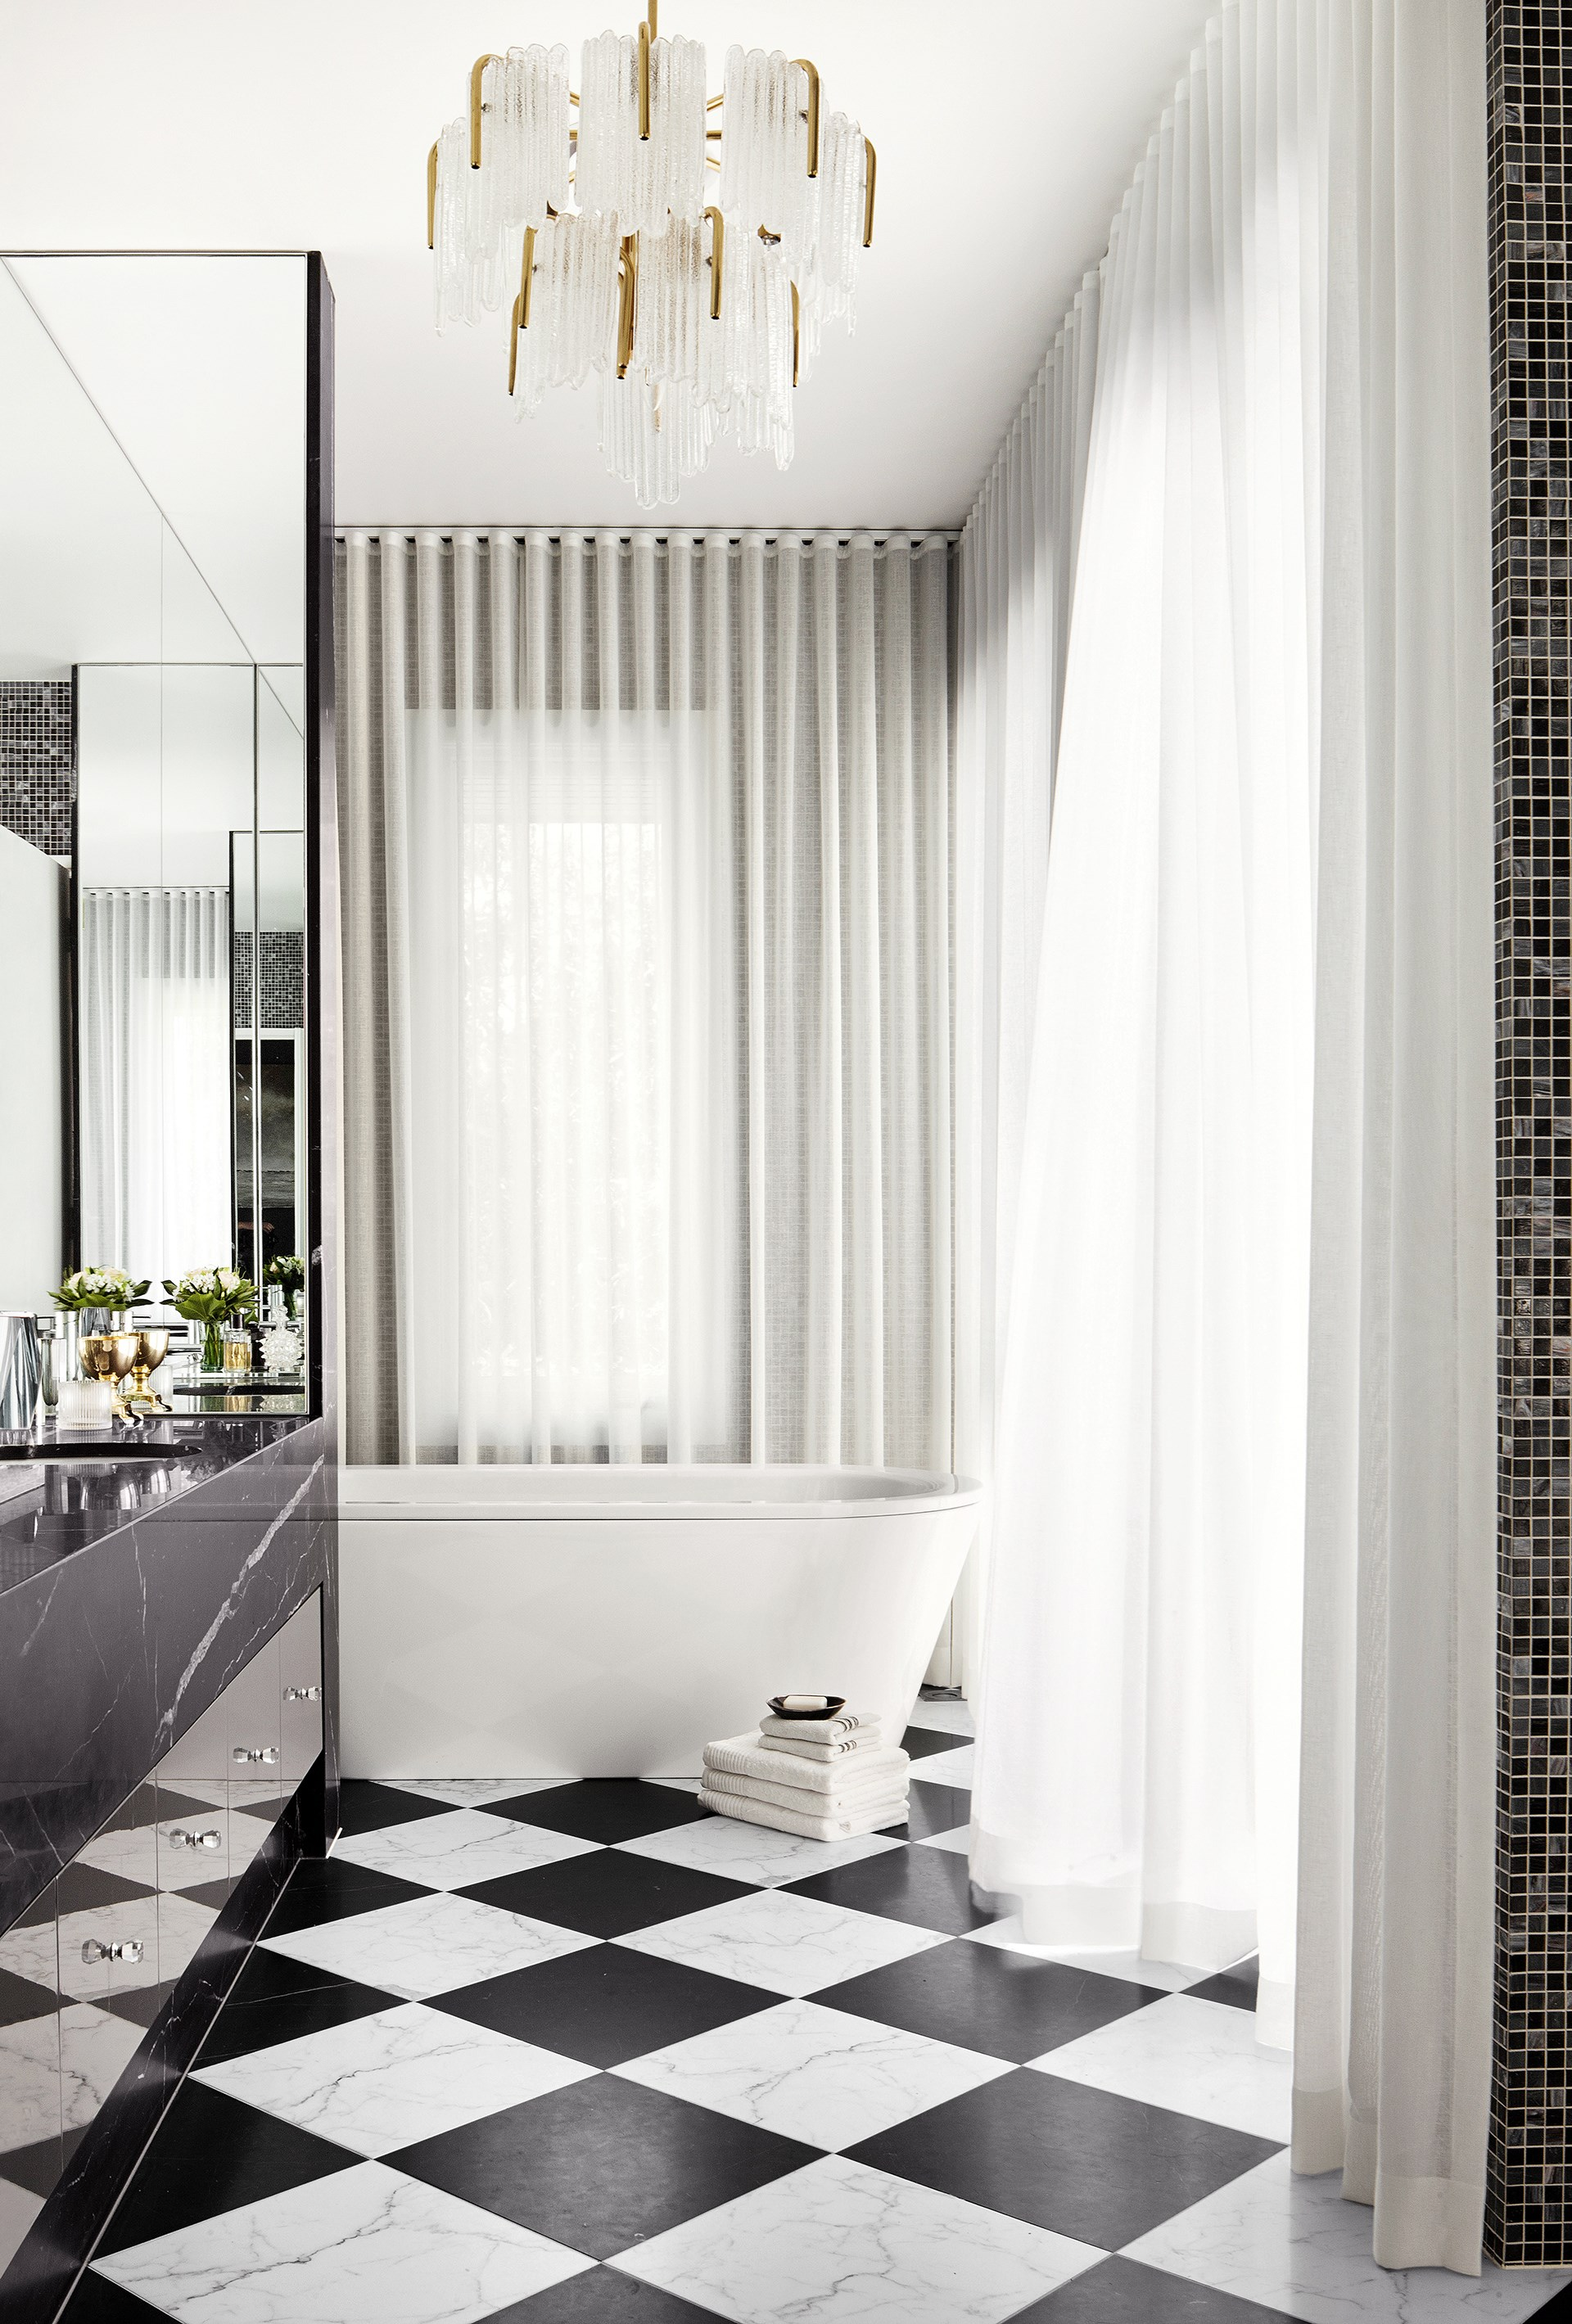 """A clever floor plan by [interior designer David Hicks](http://www.davidhicks.com/